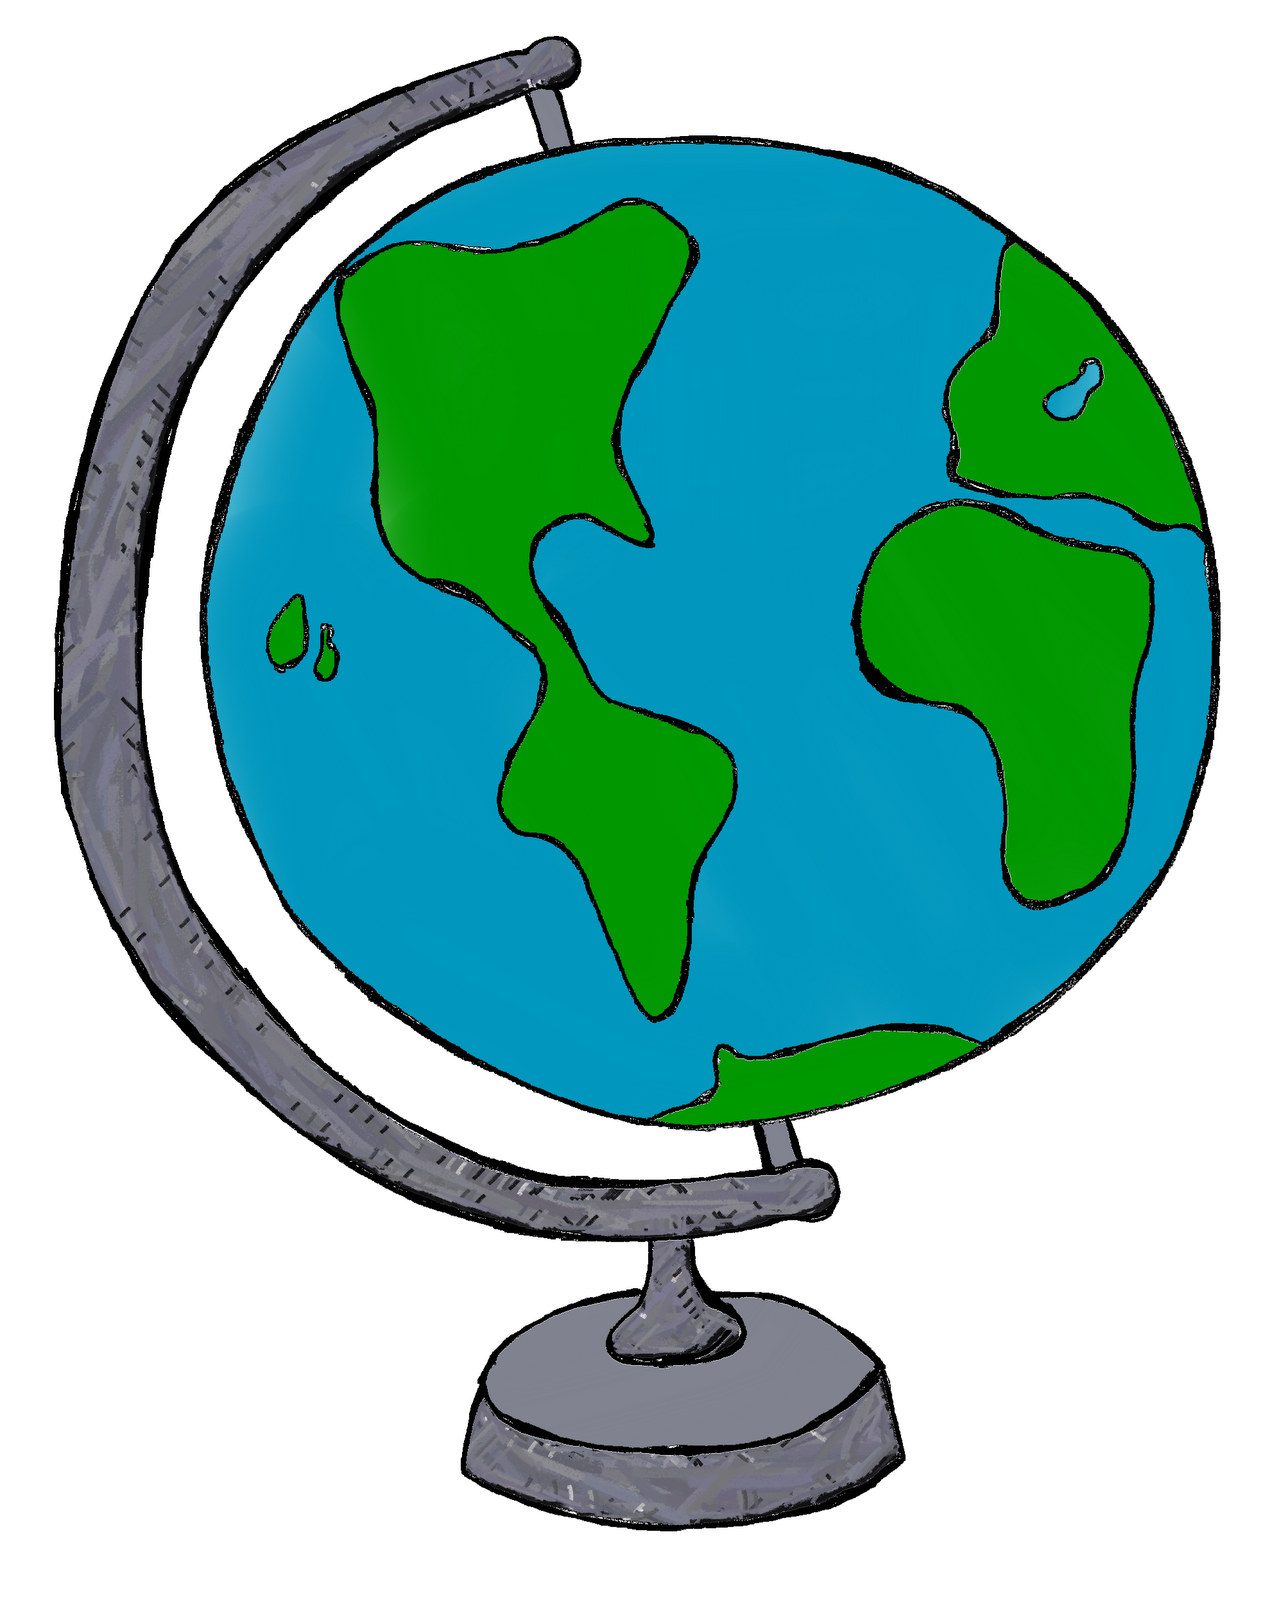 earth clipart animation - photo #43